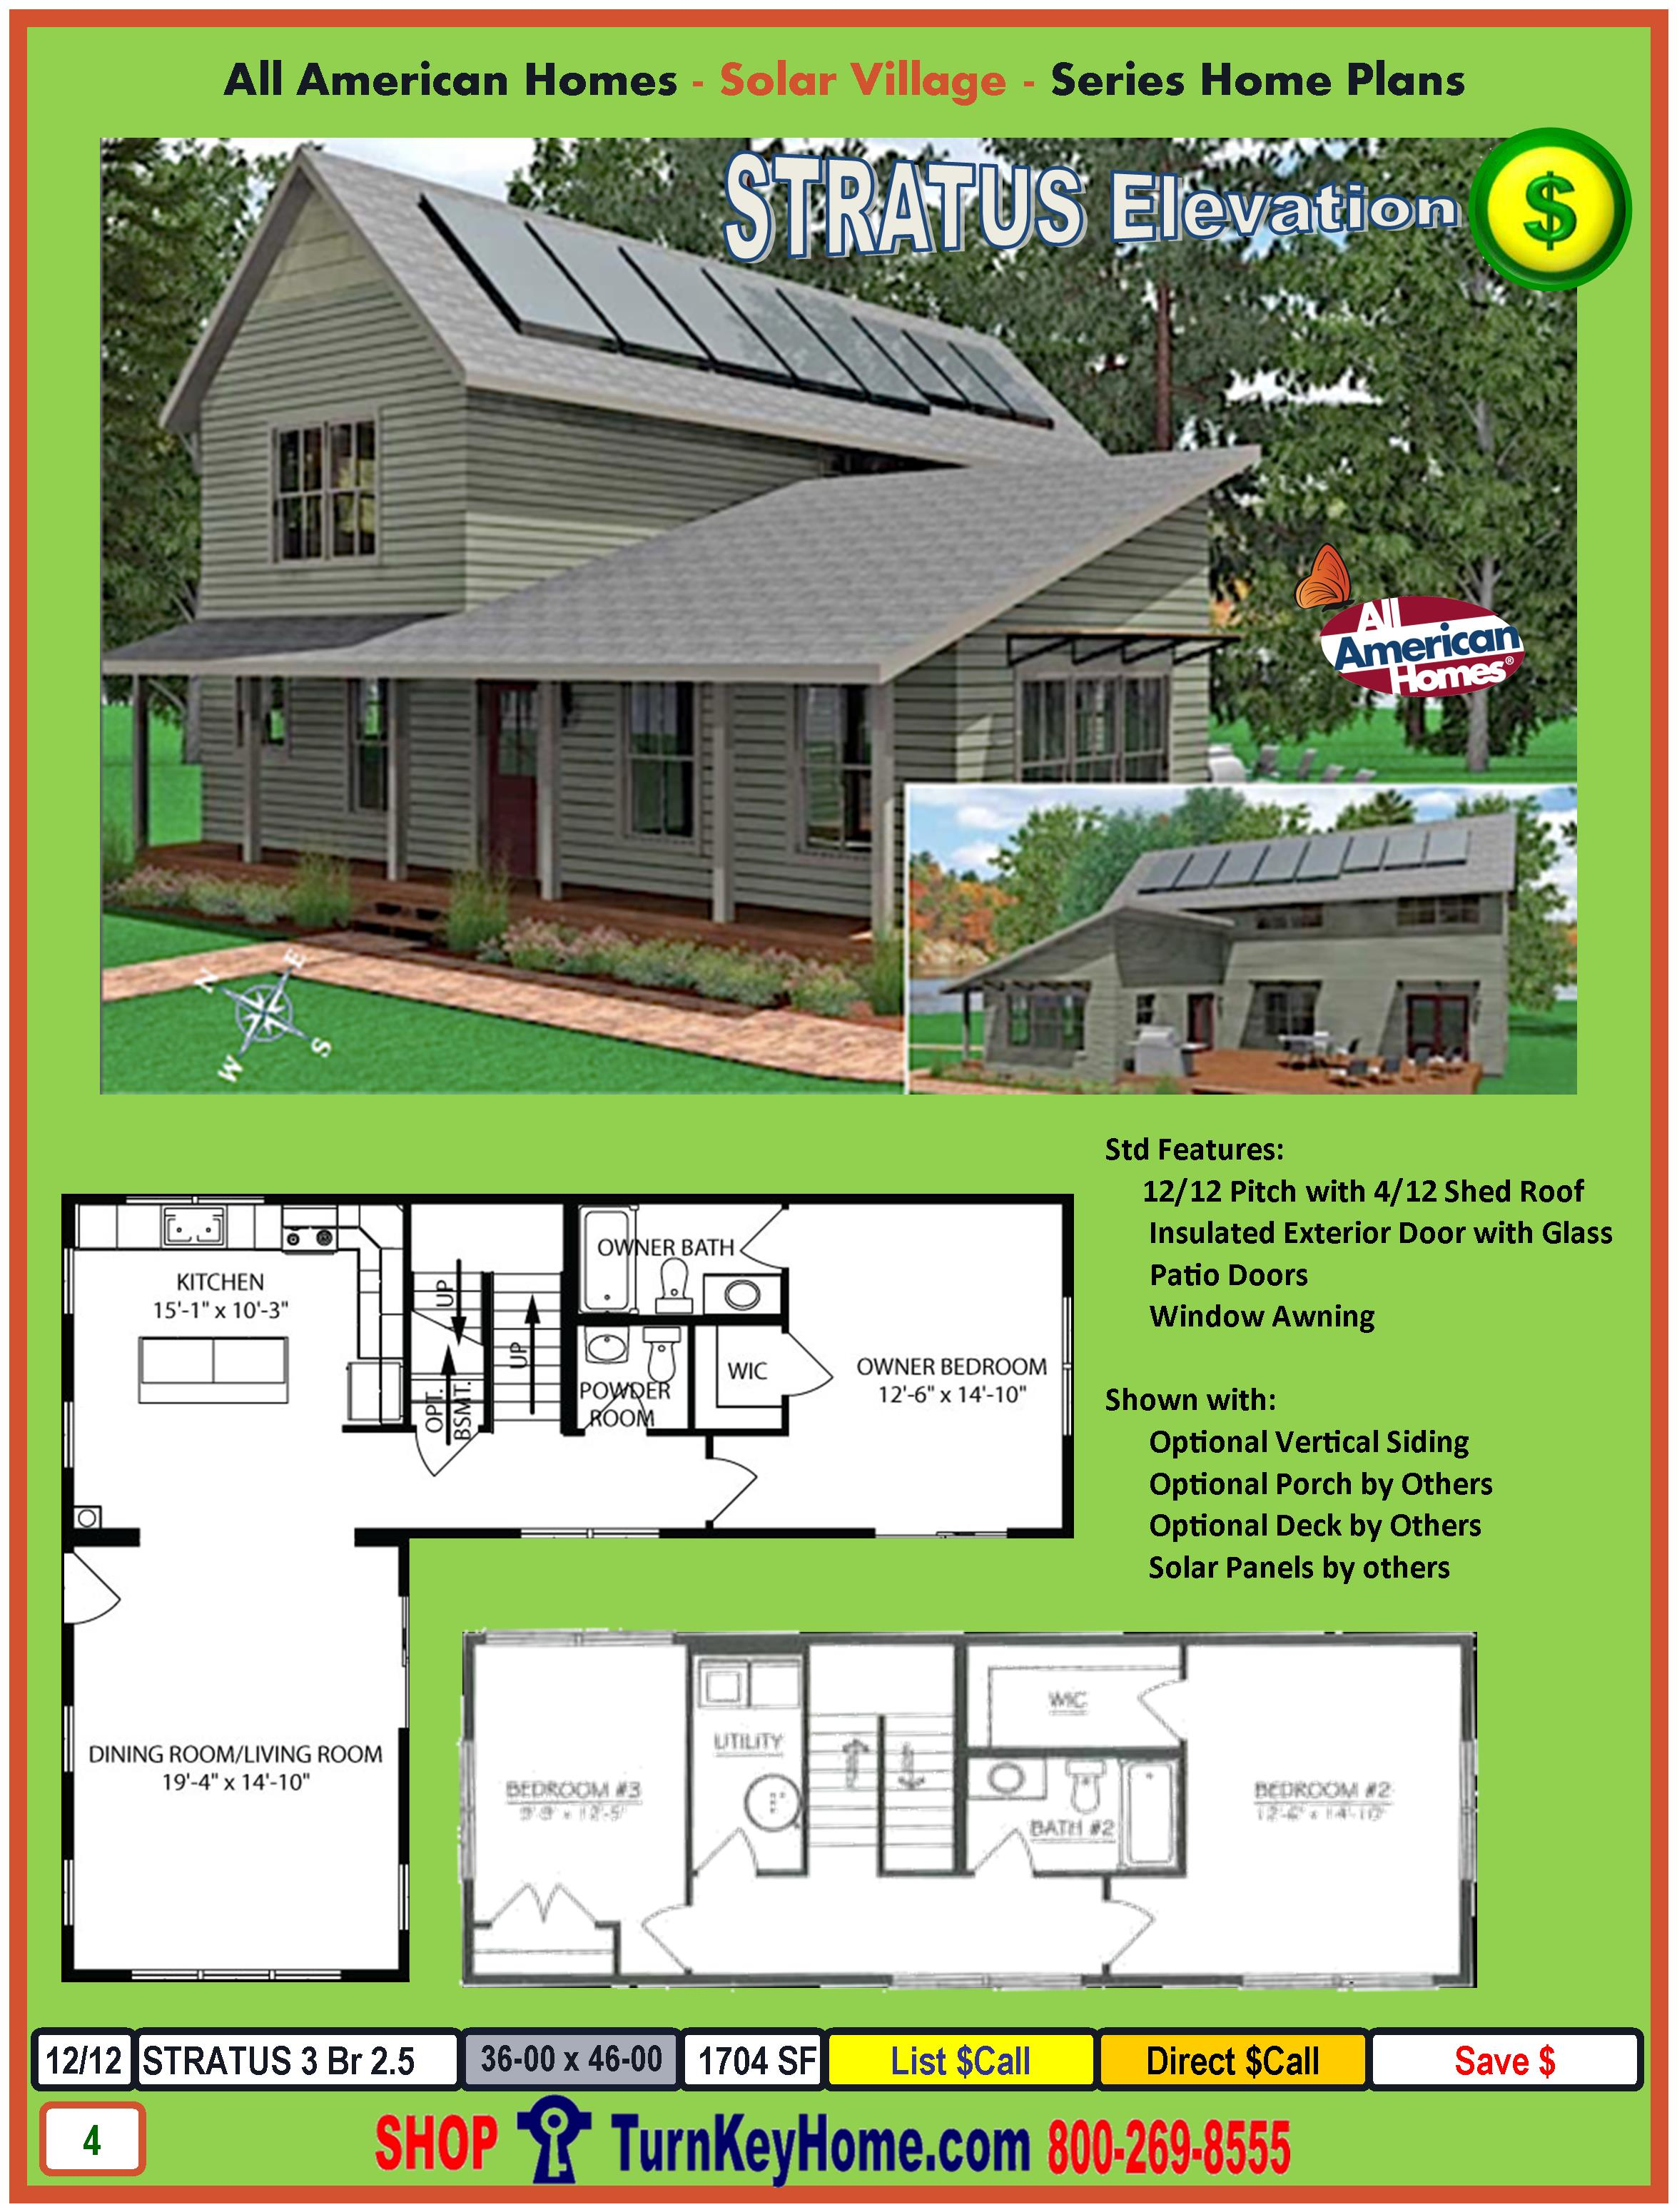 Stratus Solar Village Collection Modular Home Design From All - Home designers collection